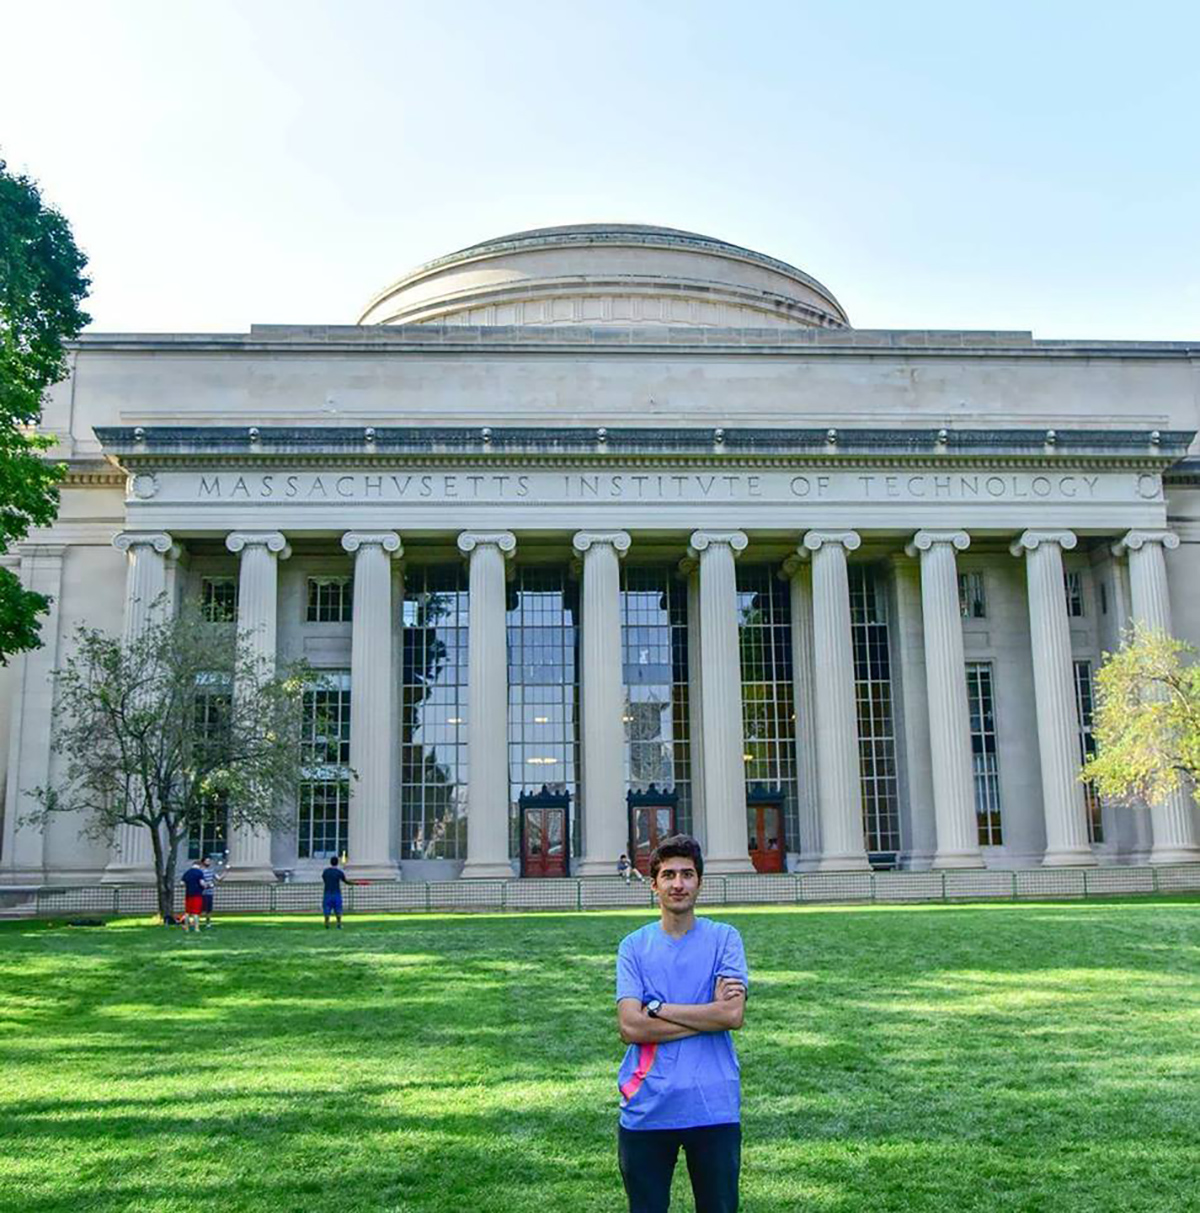 Nabil Khalil from Aleppo, Syria. His first picture at MIT, taken days after his arrival, on Sep. 6, 2017.